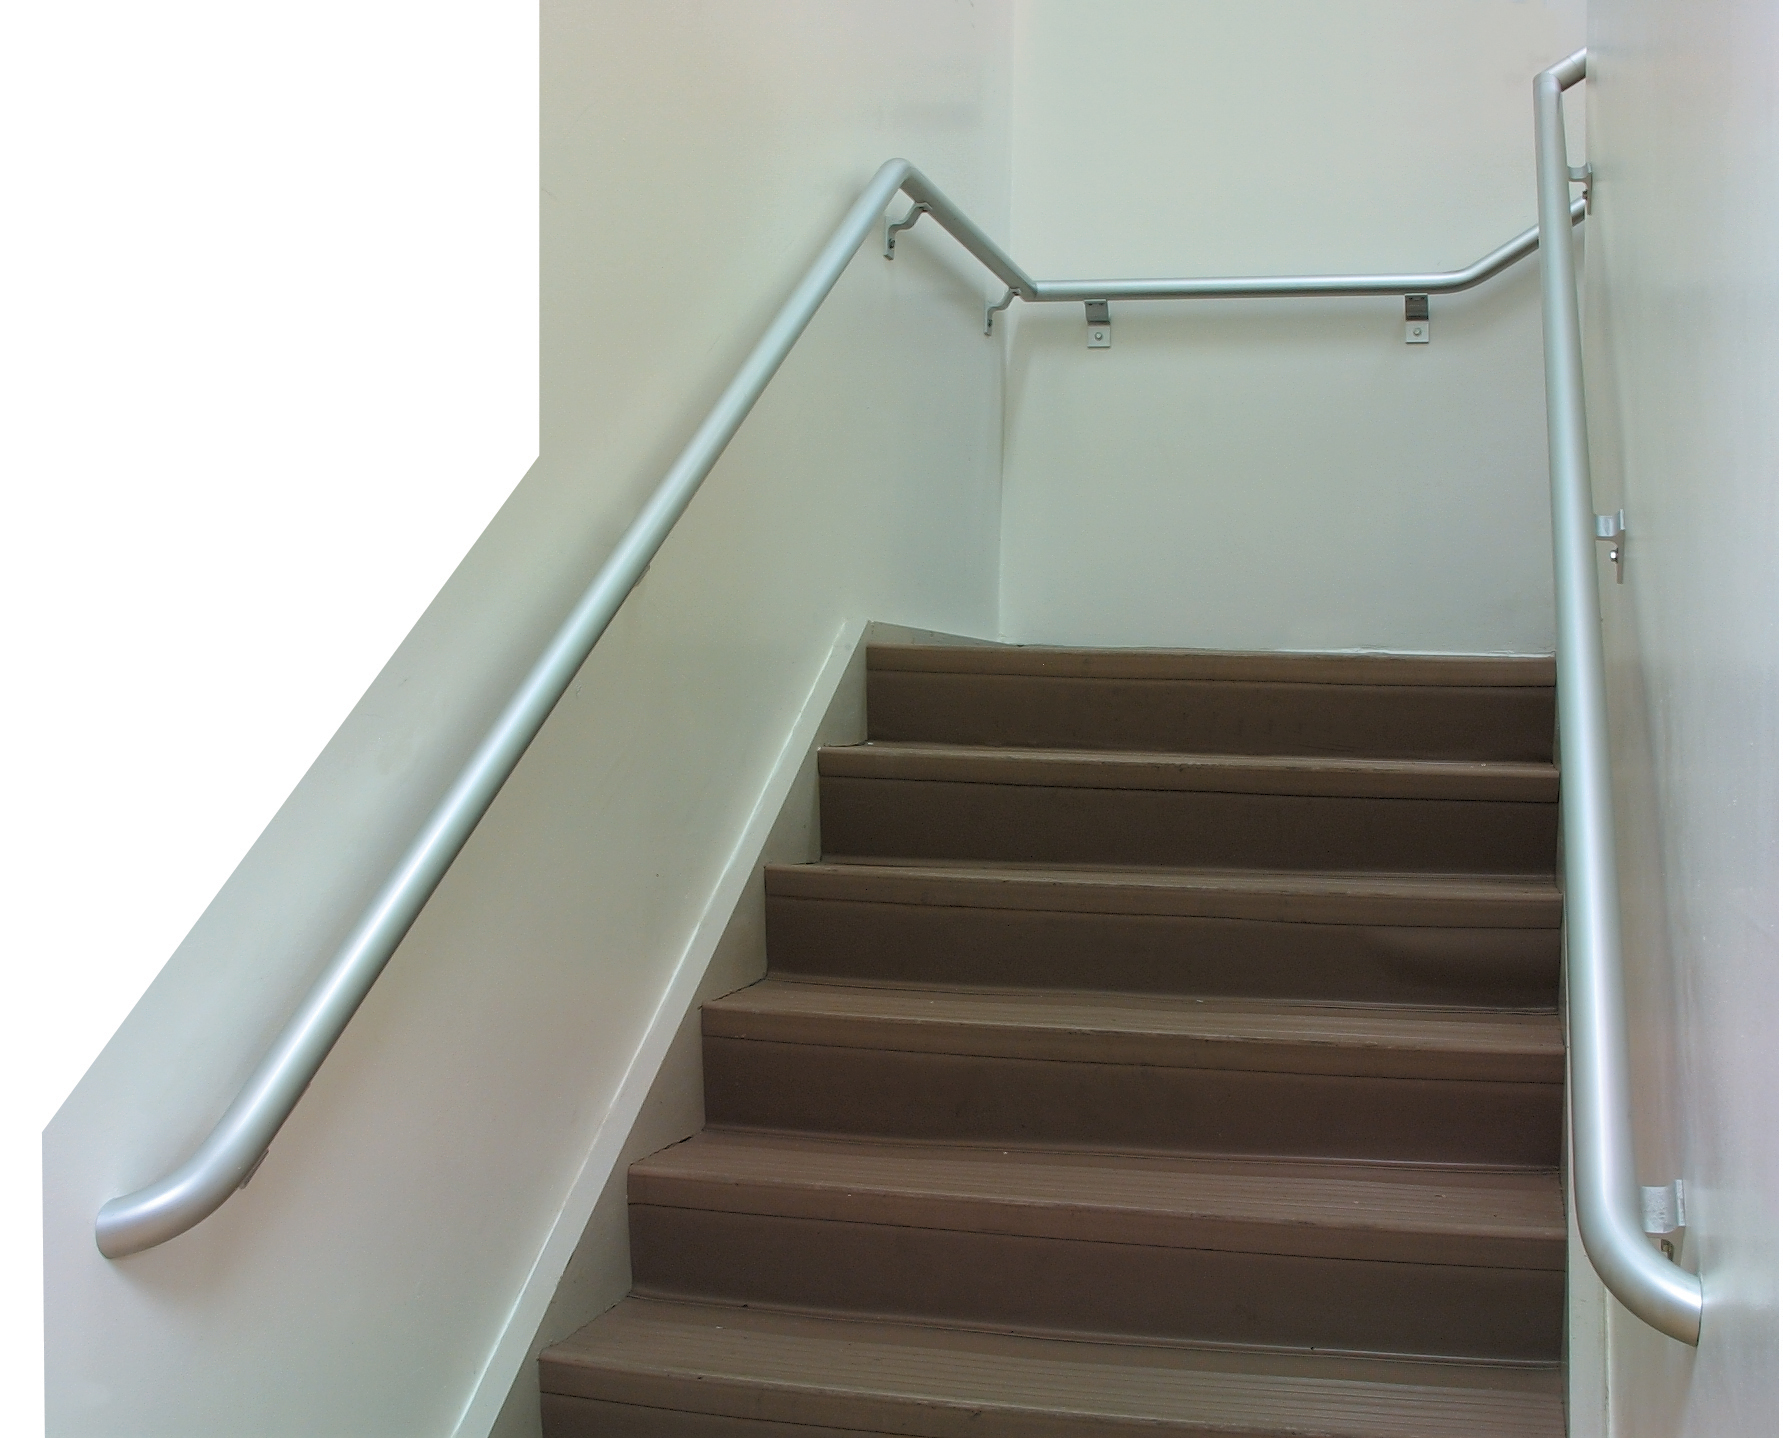 Pipe handrail on both sides of an interior stairway